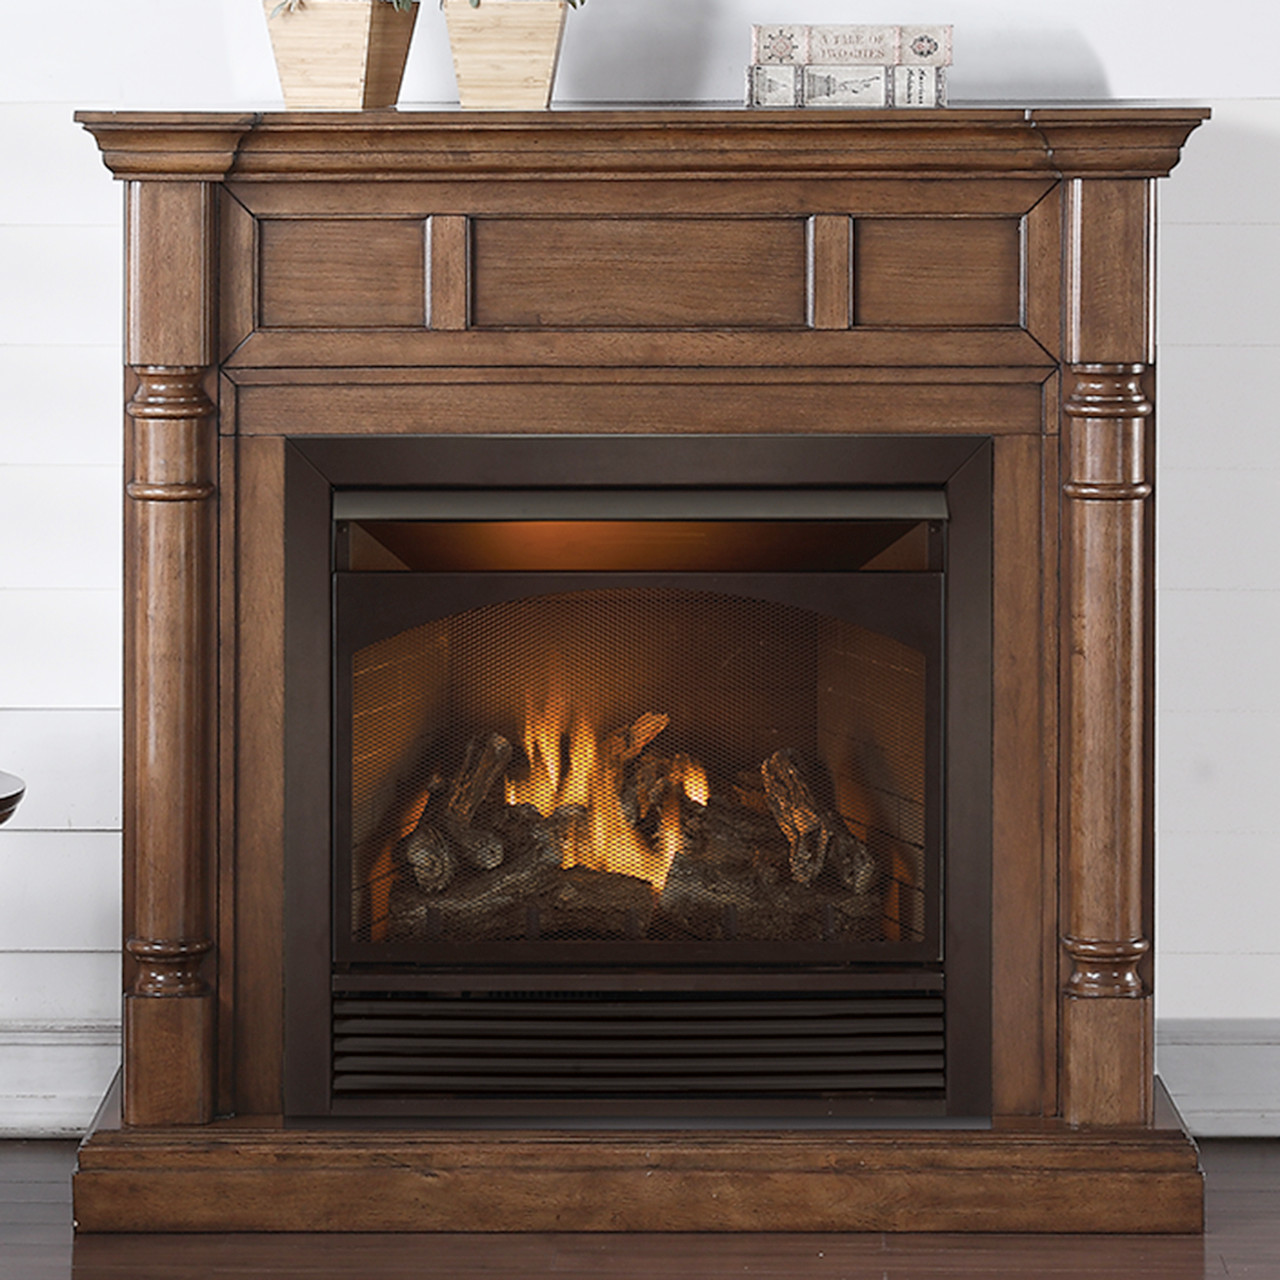 Duluth Forge Full Size Dual Fuel Ventless Fireplace   32,000 BTU, Remote  Control, Walnut Finish